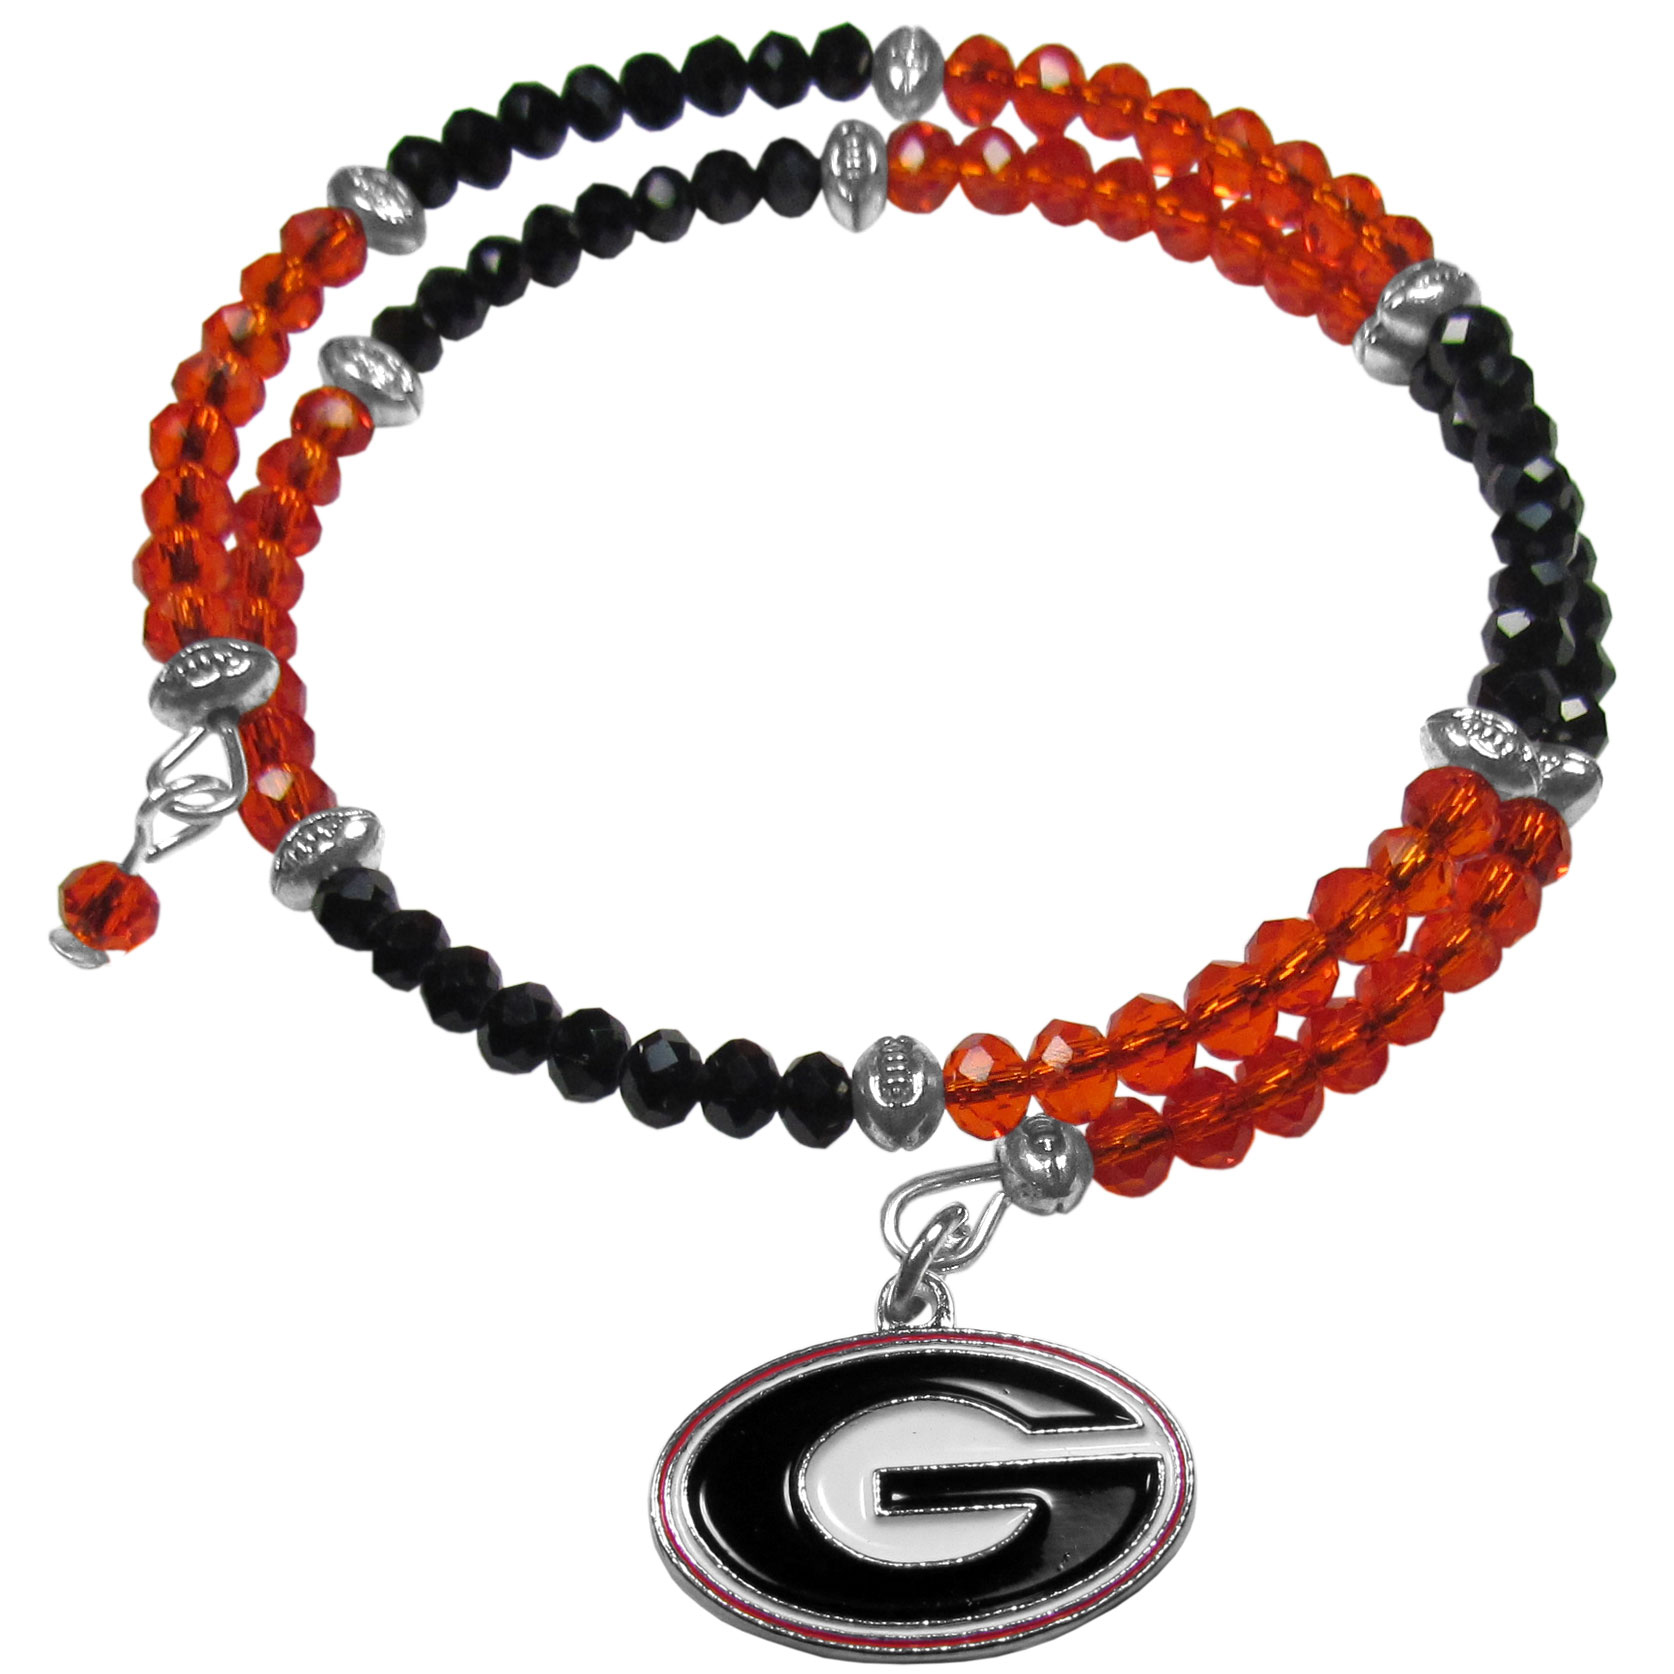 Georgia Bulldogs Crystal Memory Wire Bracelet - Our Georgia Bulldogs memory wire crystal bracelet is trendy way to show off your love of the game. The double wrap bracelet is completely covered in 4 mm crystals that are broken up with adorable football beads creating a designer look with a sporty twist. The bracelet features a fully cast, metal team charm that has expertly enameled team colors. This fashion jewelry piece is a must-have for the die-hard fan that chic look that can dress up any outfit.